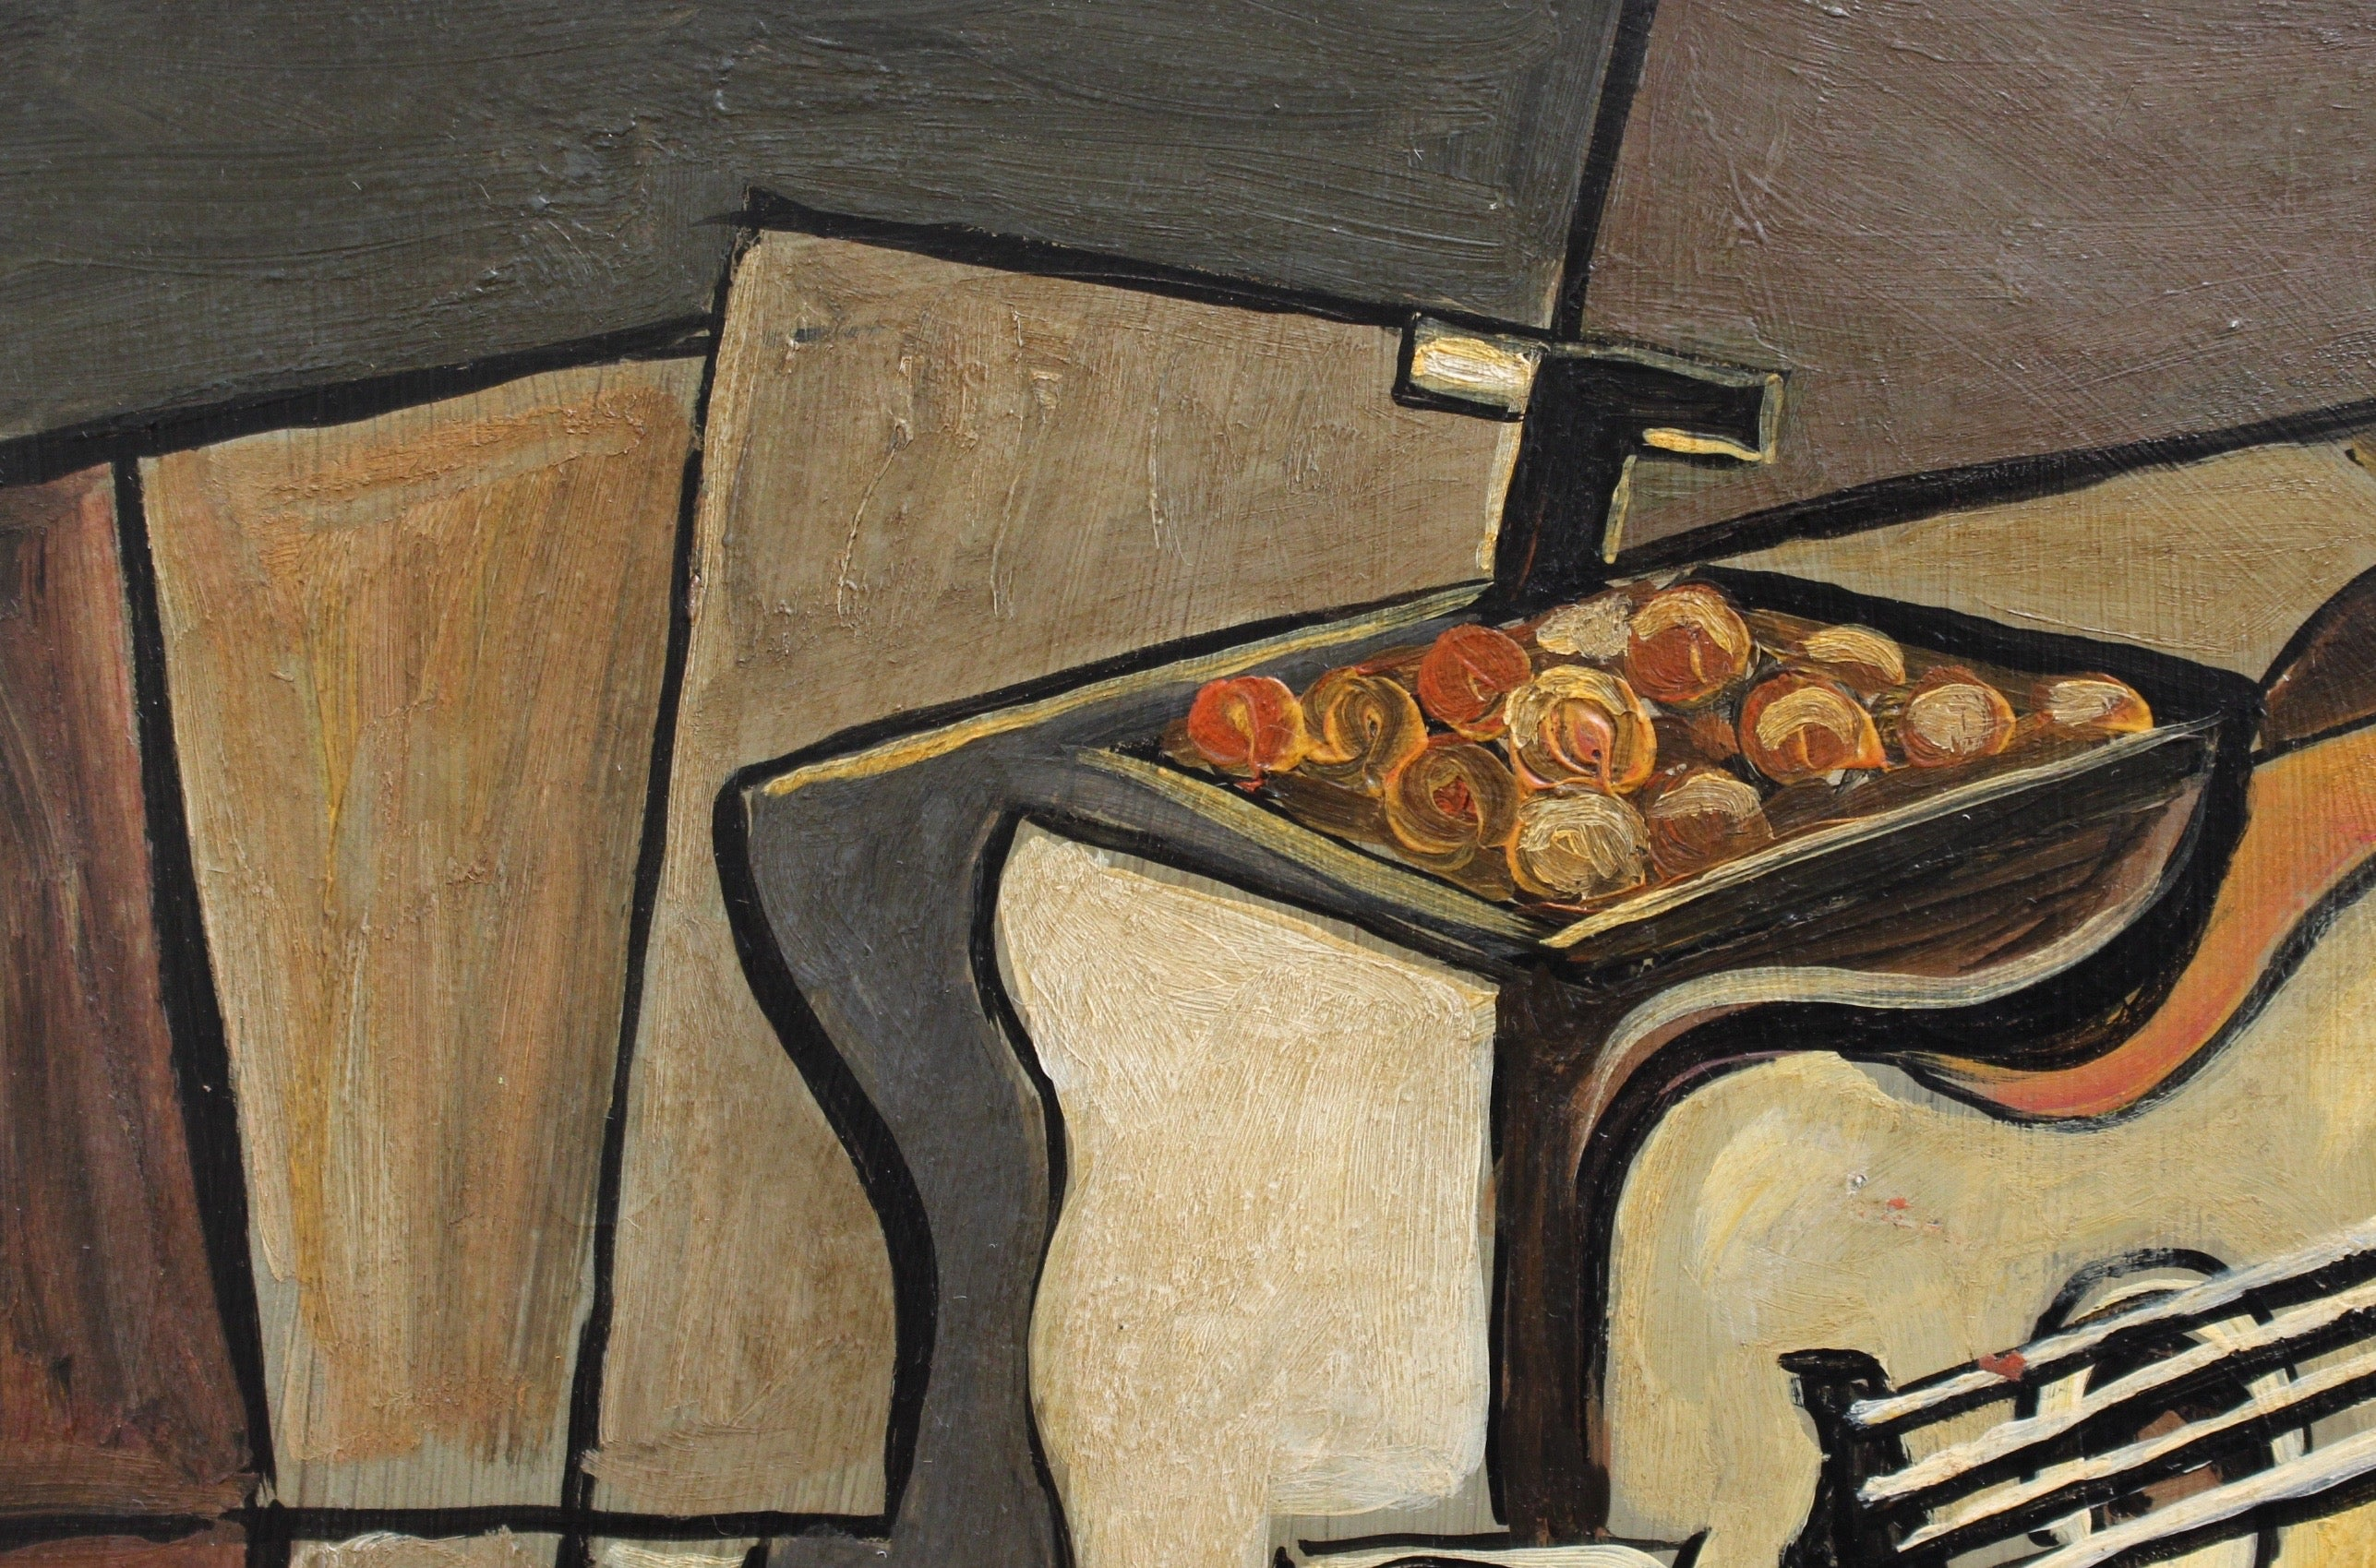 'Cubist Still Life on Table' by J.G. (circa 1940s - 1960s)